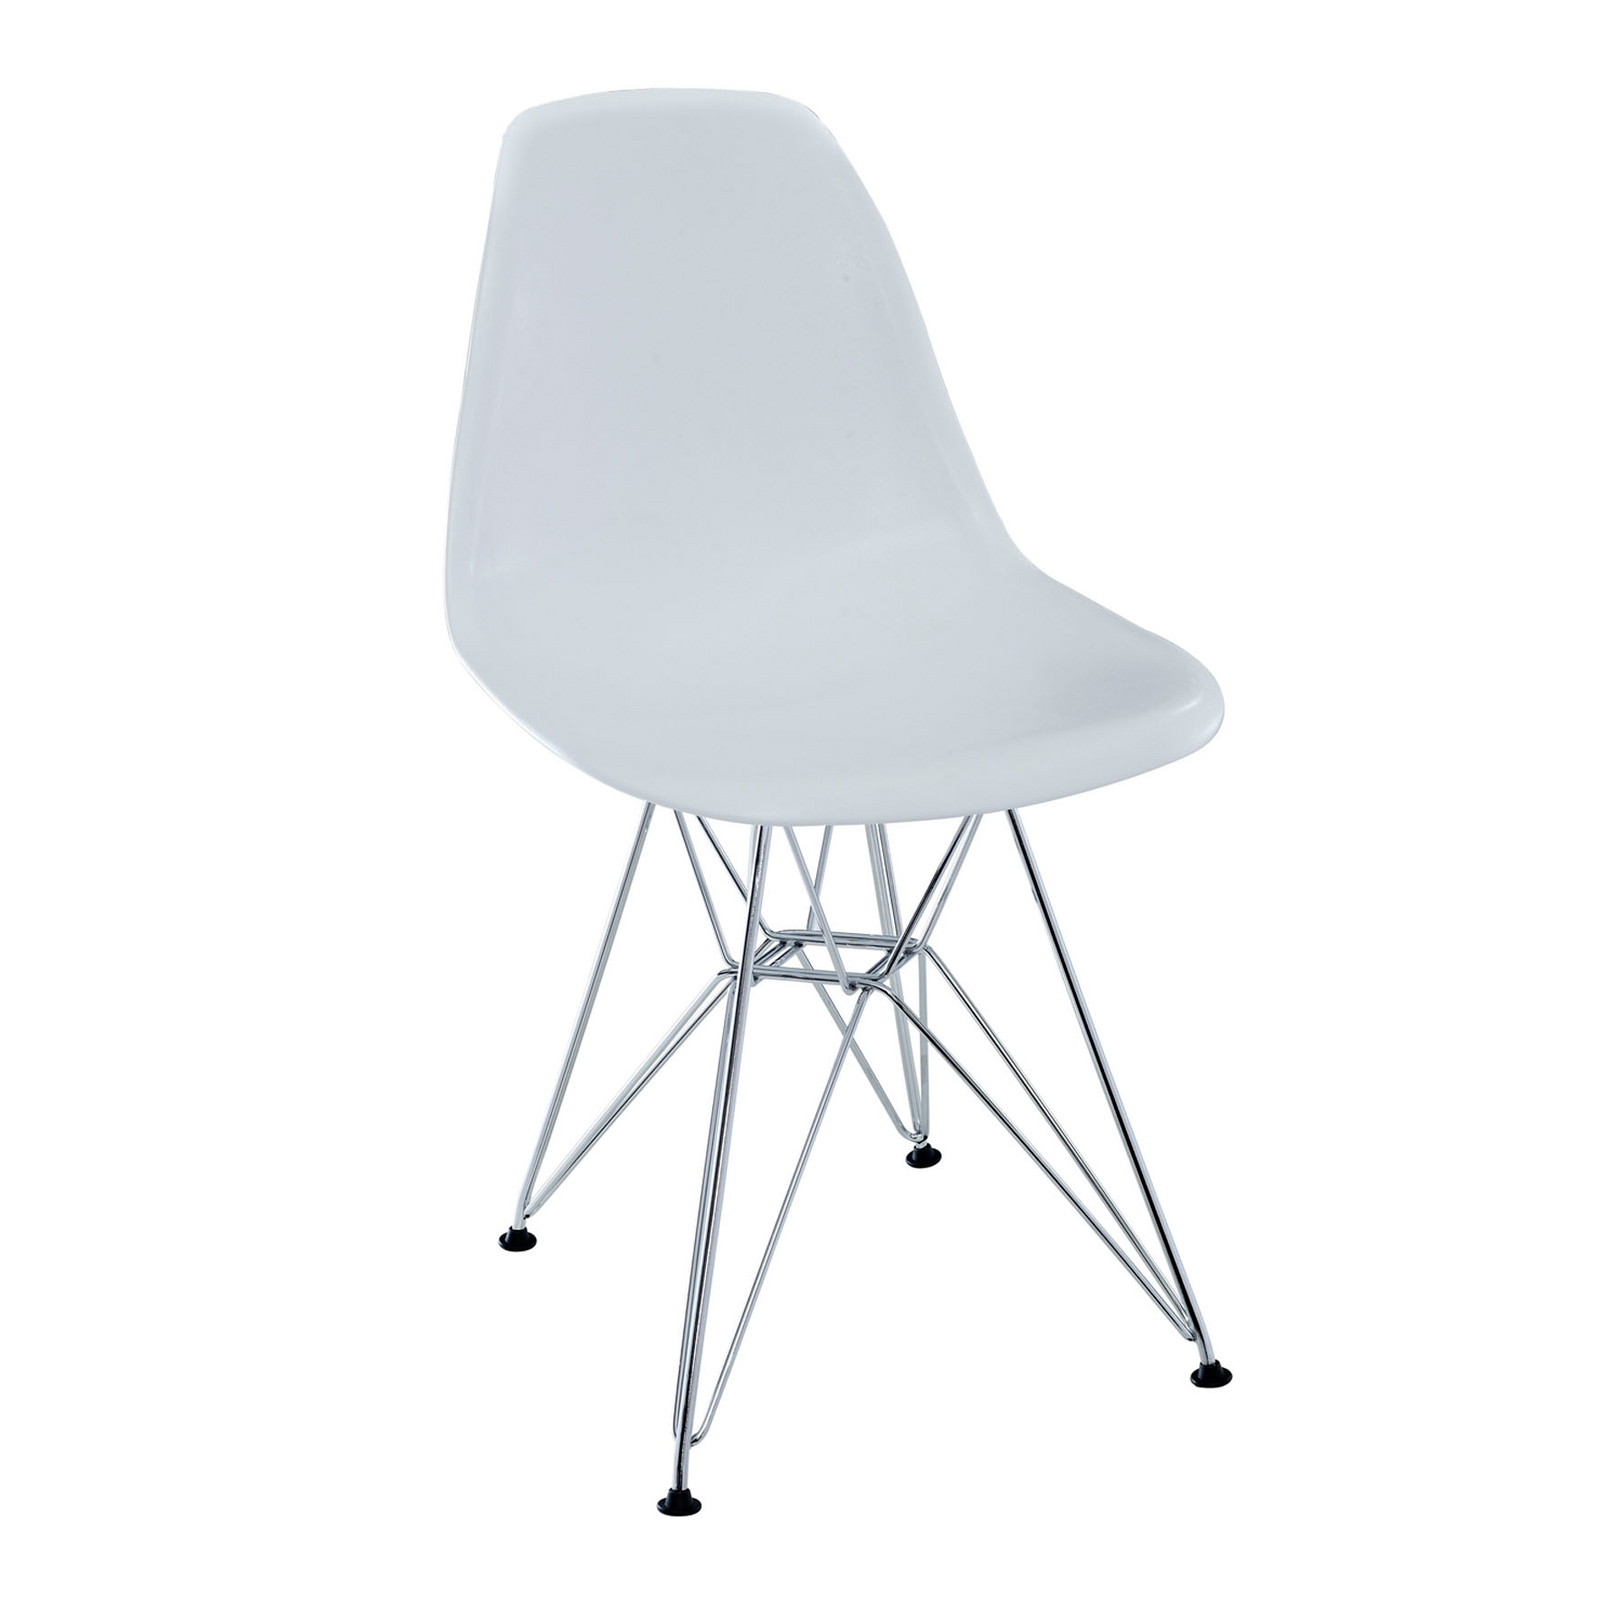 eames chair white recliner outdoor chairs uk side rentals event furniture rental